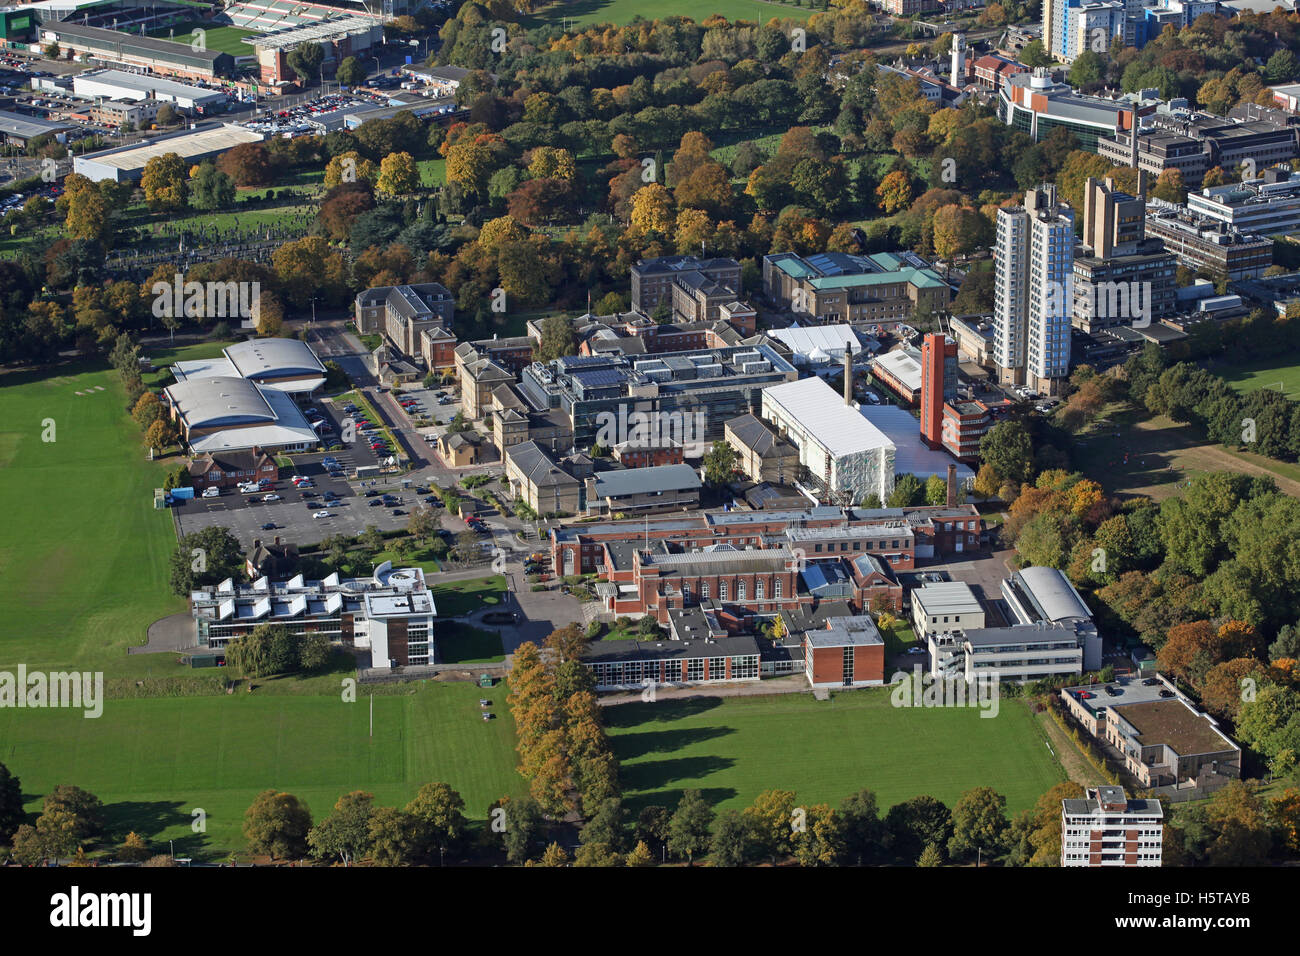 aerial view of The University of Leicester, UK - Stock Image